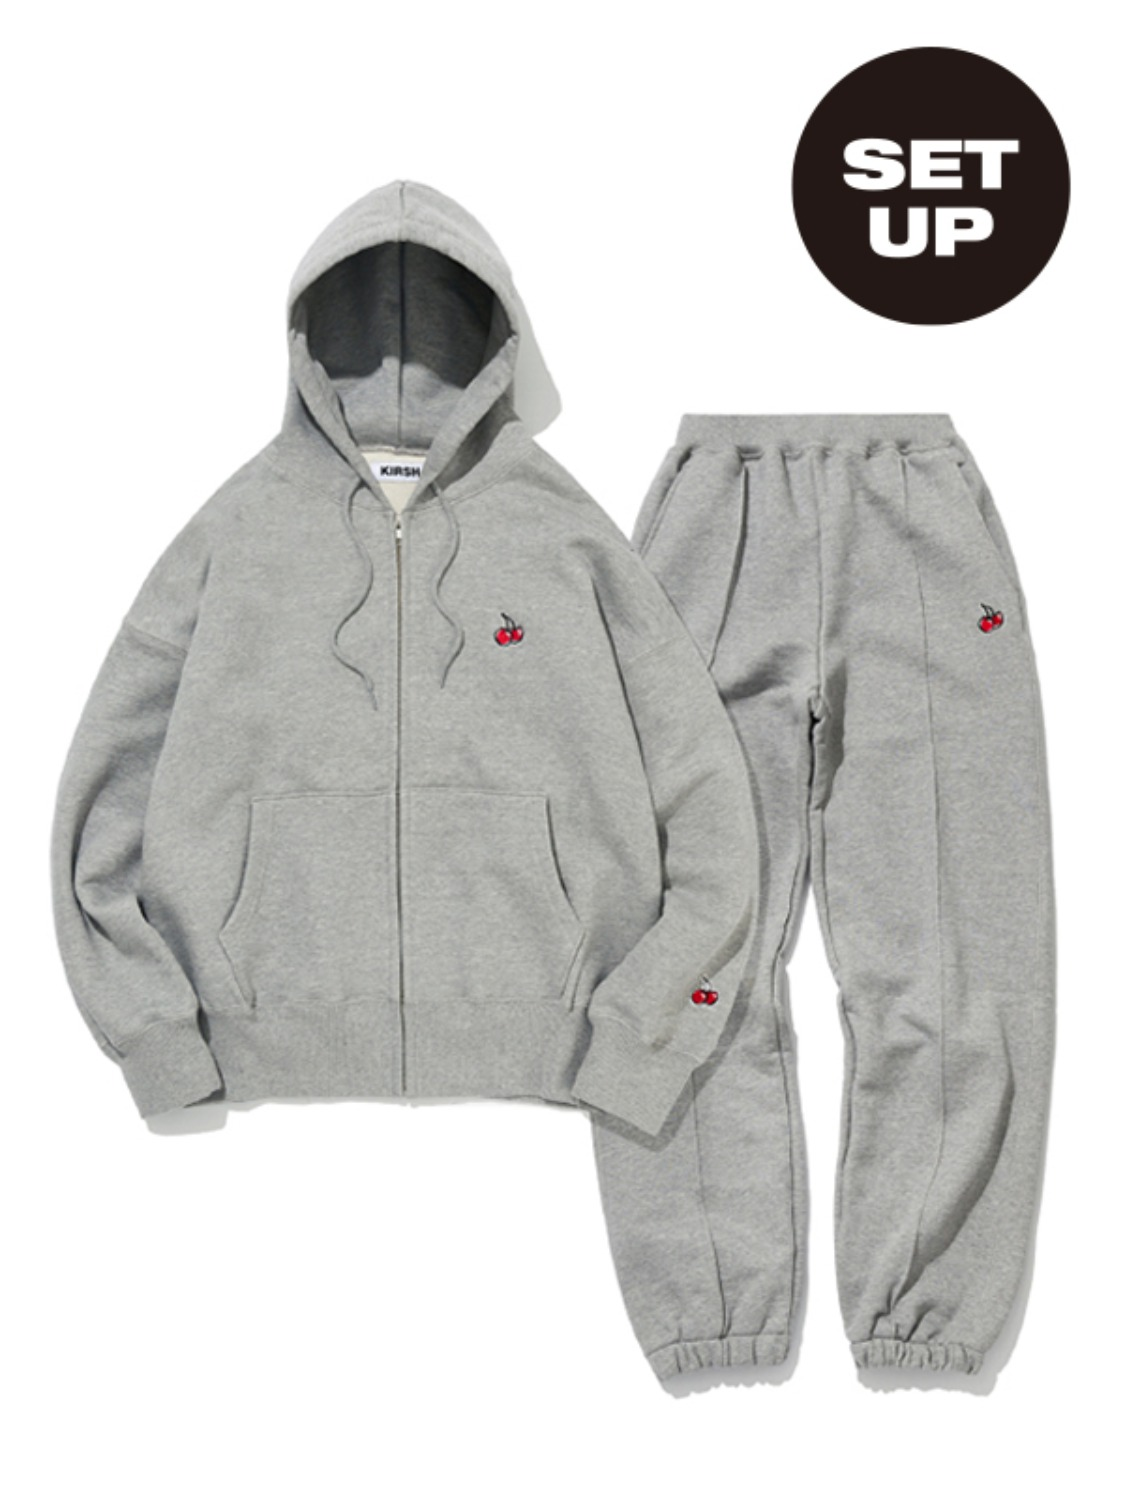 SMALL CHERRY HOODIE ZIPUP + CHERRY LINE JOGGER PANTS [GRAY+GRAY]